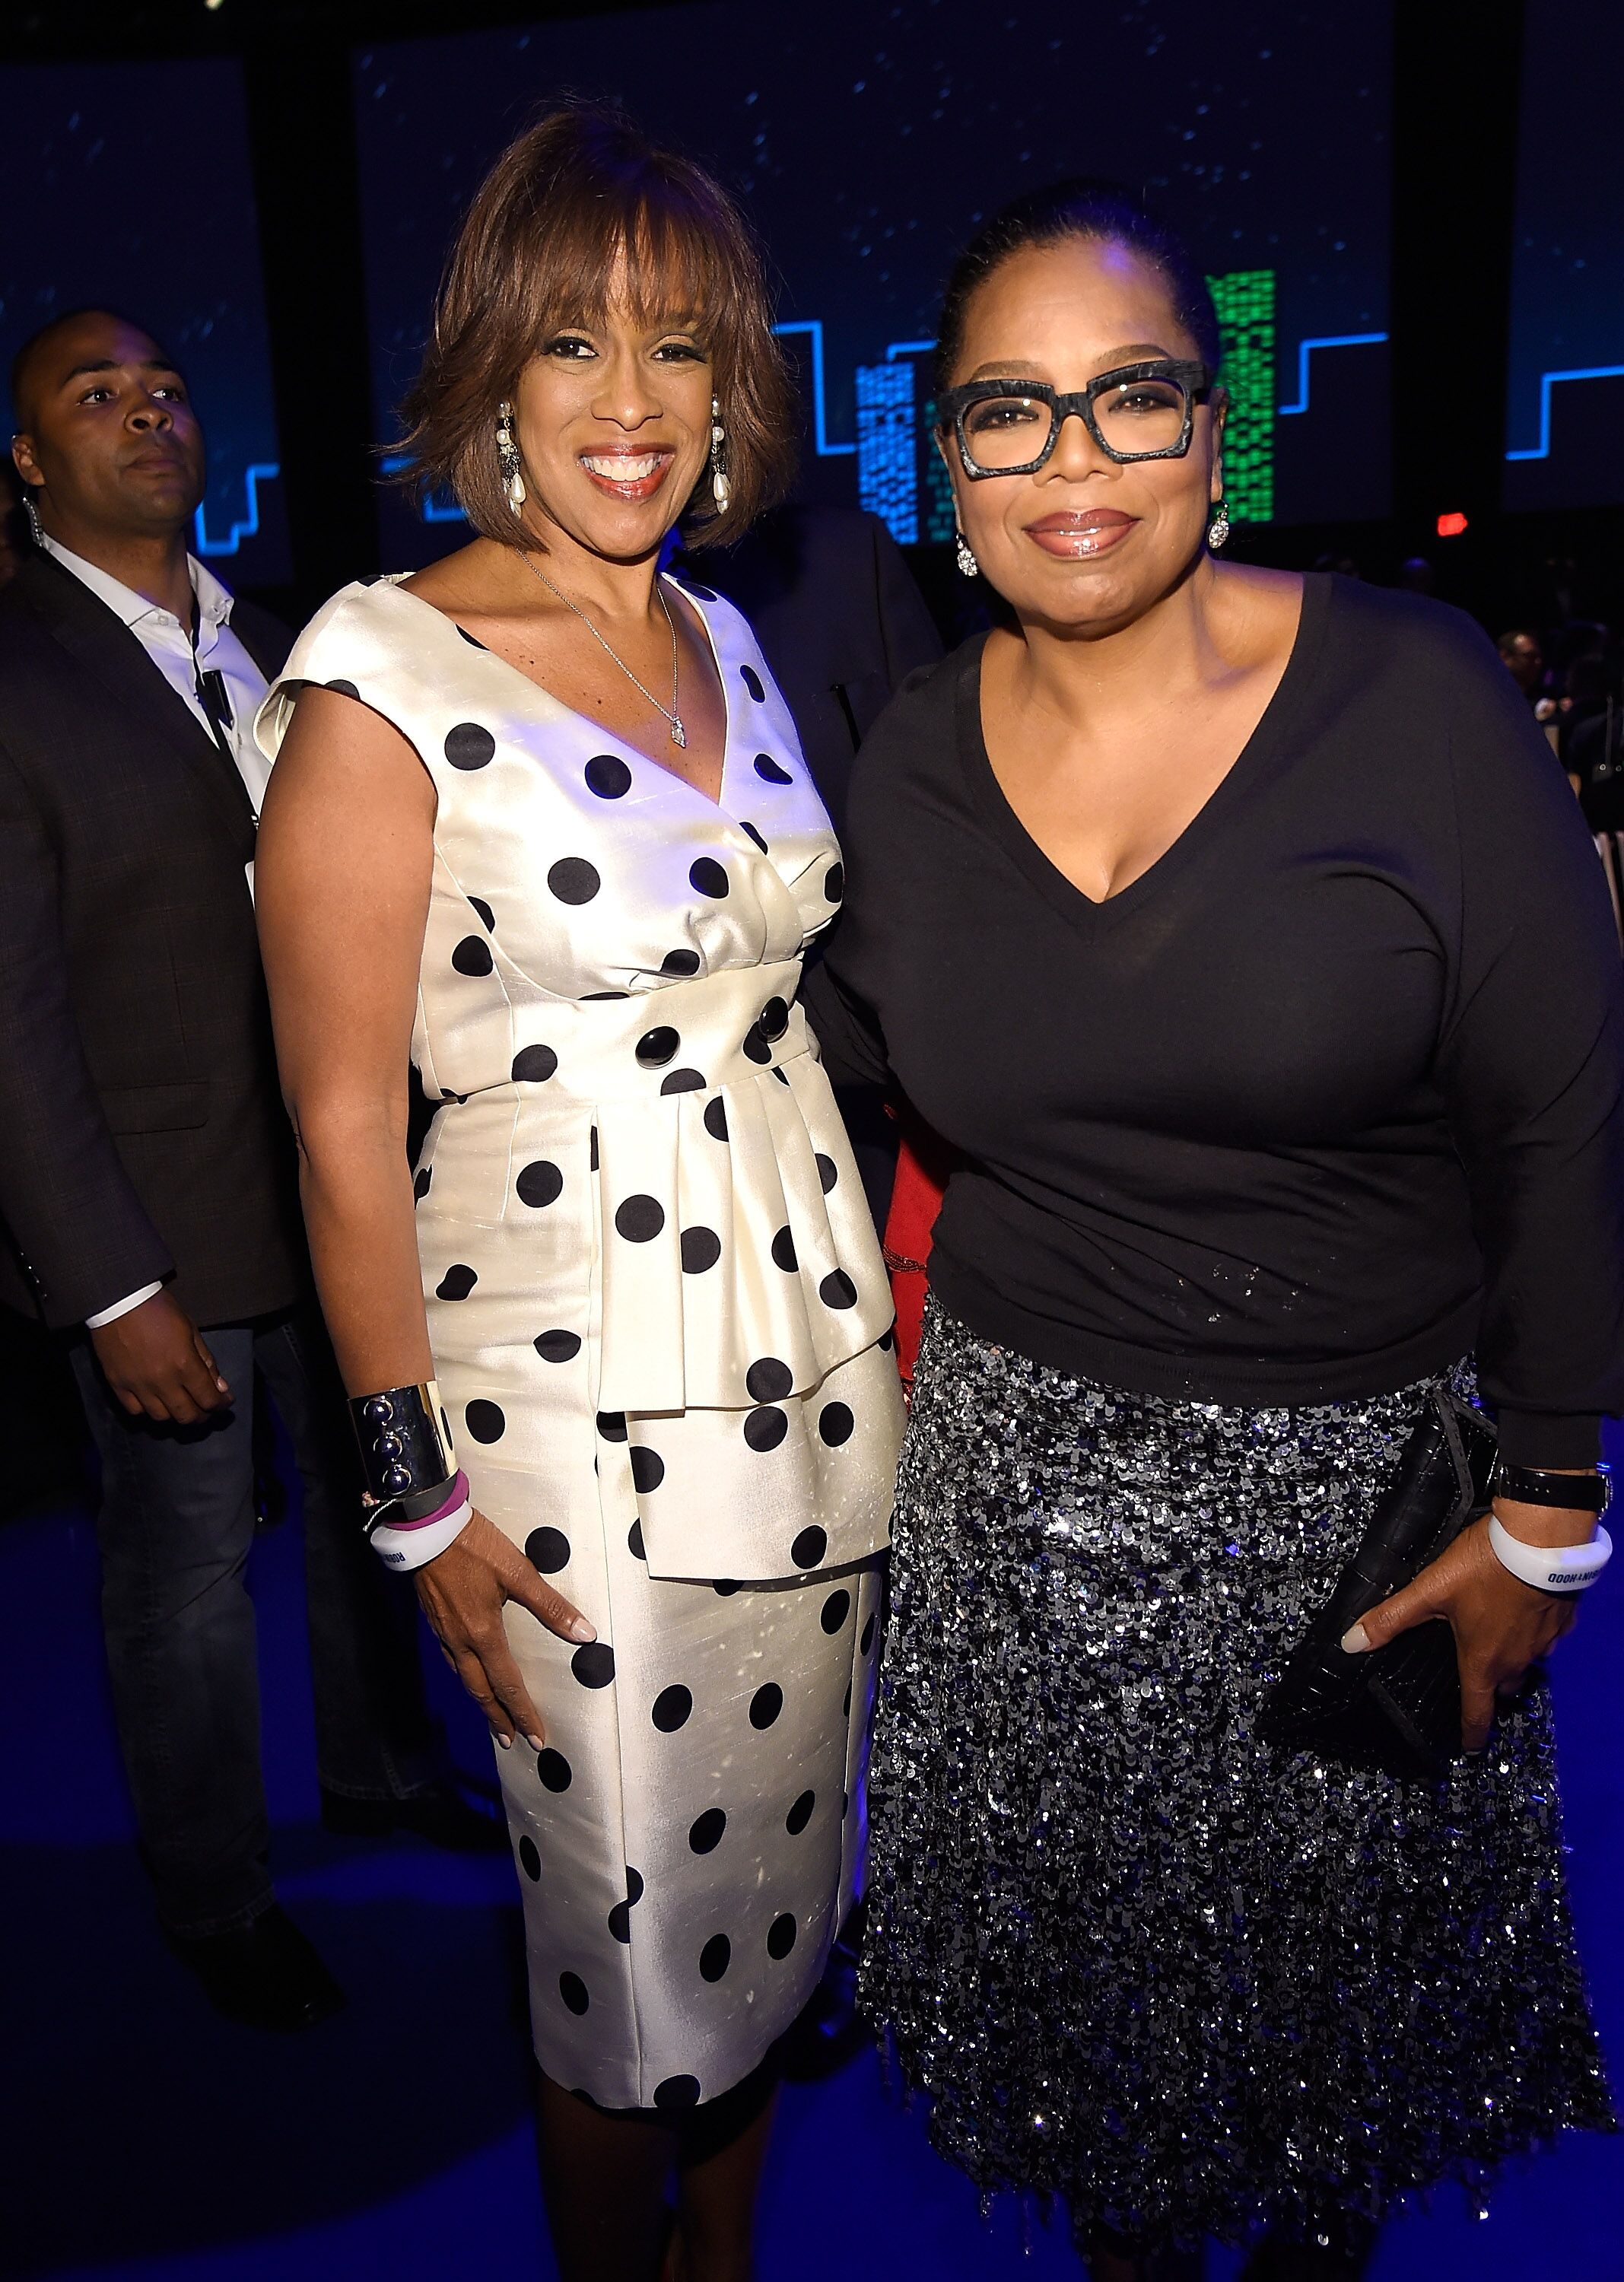 Gayle King and Oprah Winfrey at The Robin Hood Foundation's 2016 Benefit. | Source: Getty Images